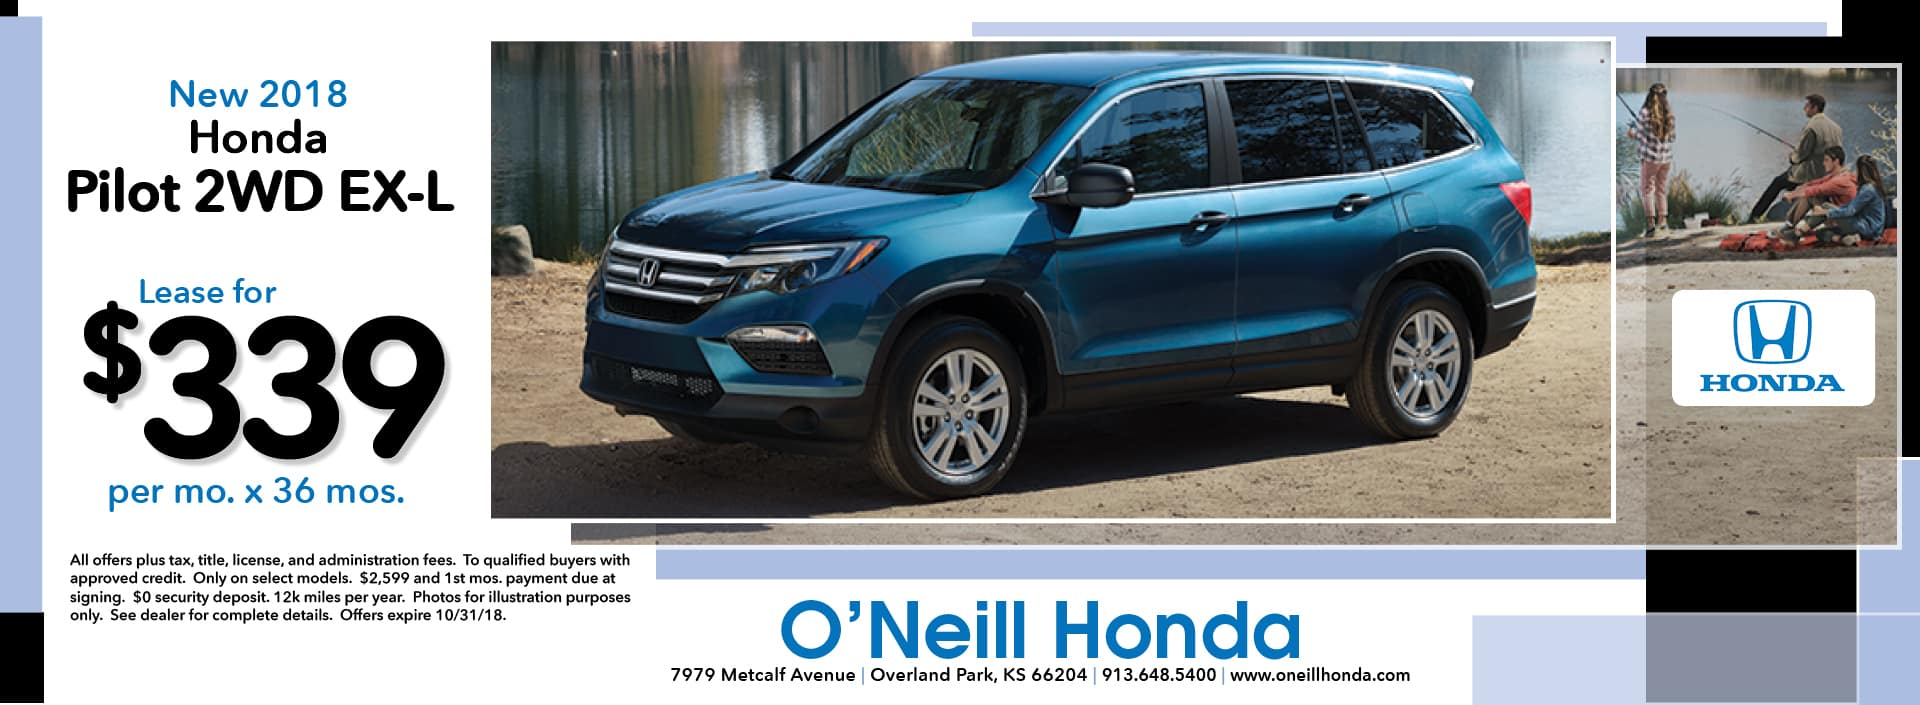 Attractive 2018 Honda Pilot